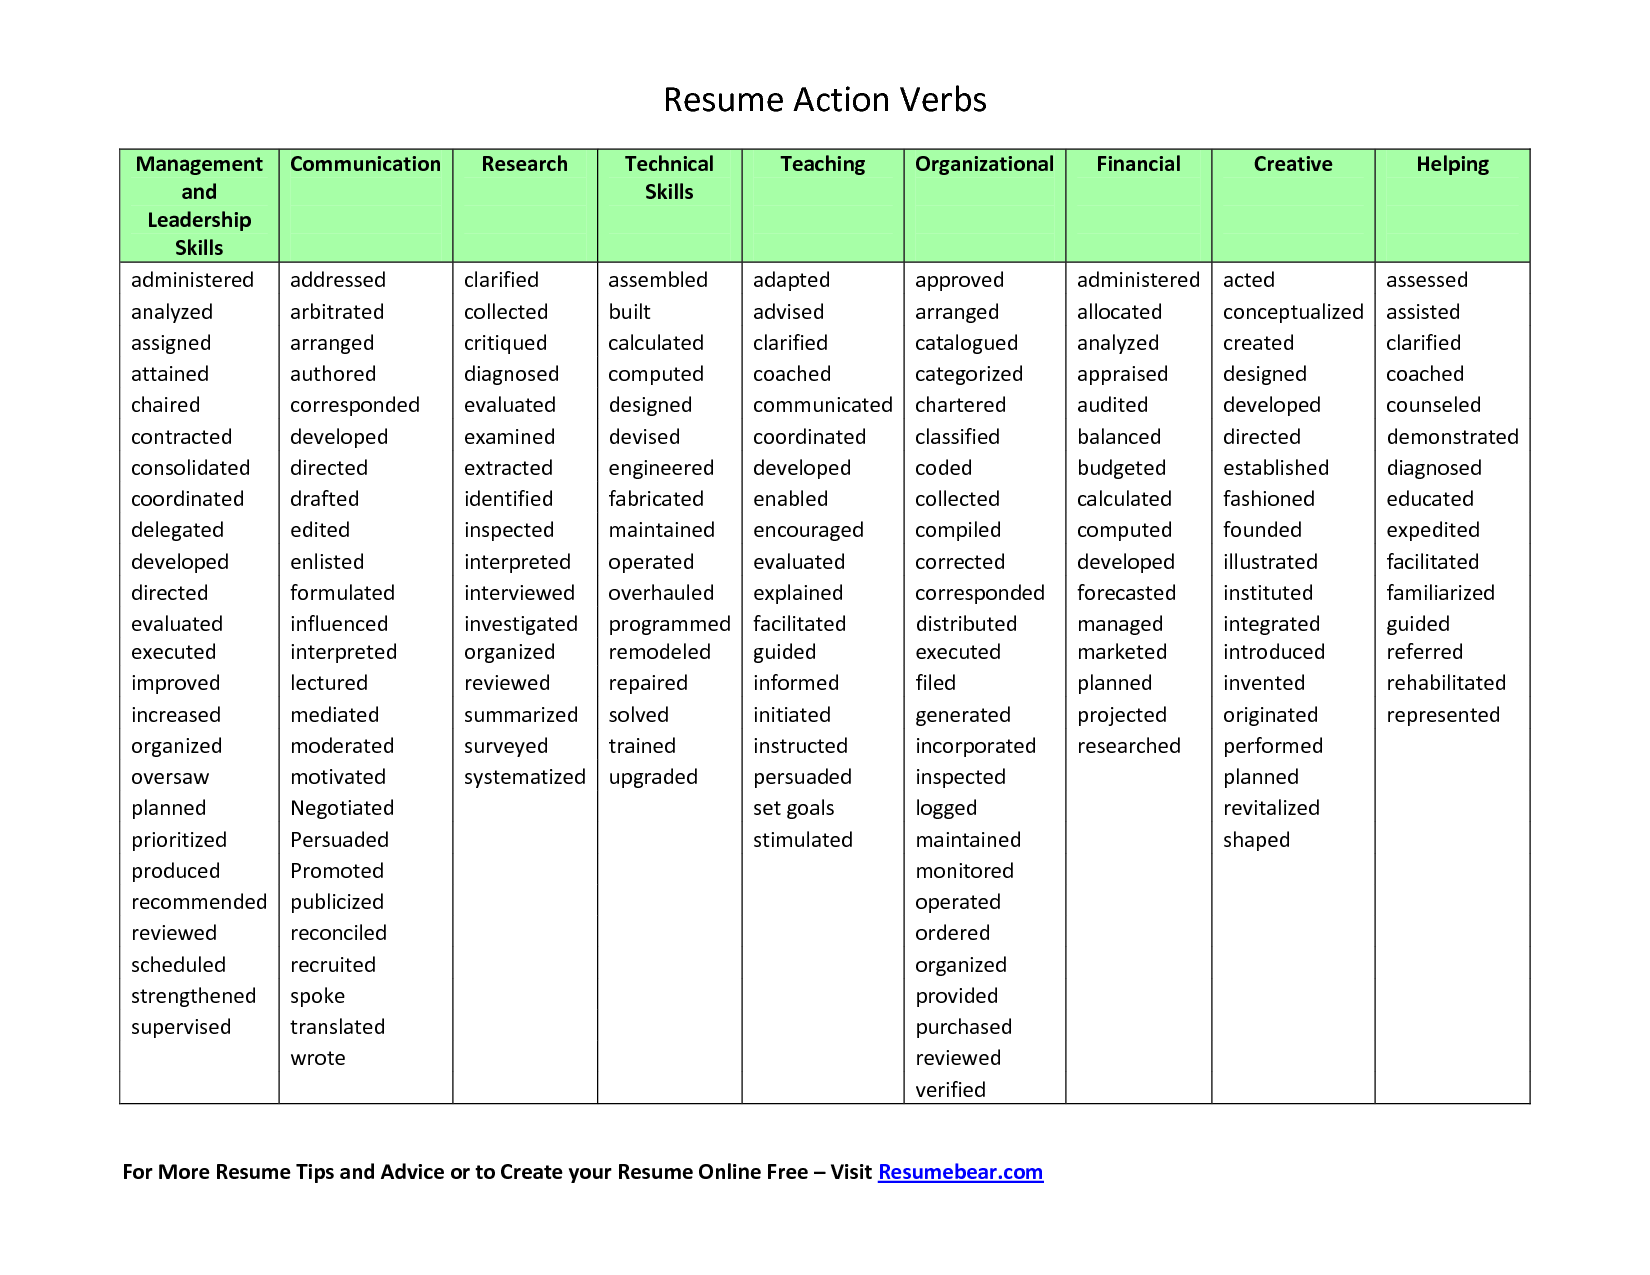 Resume action words bc top resume ghostwriter services for university